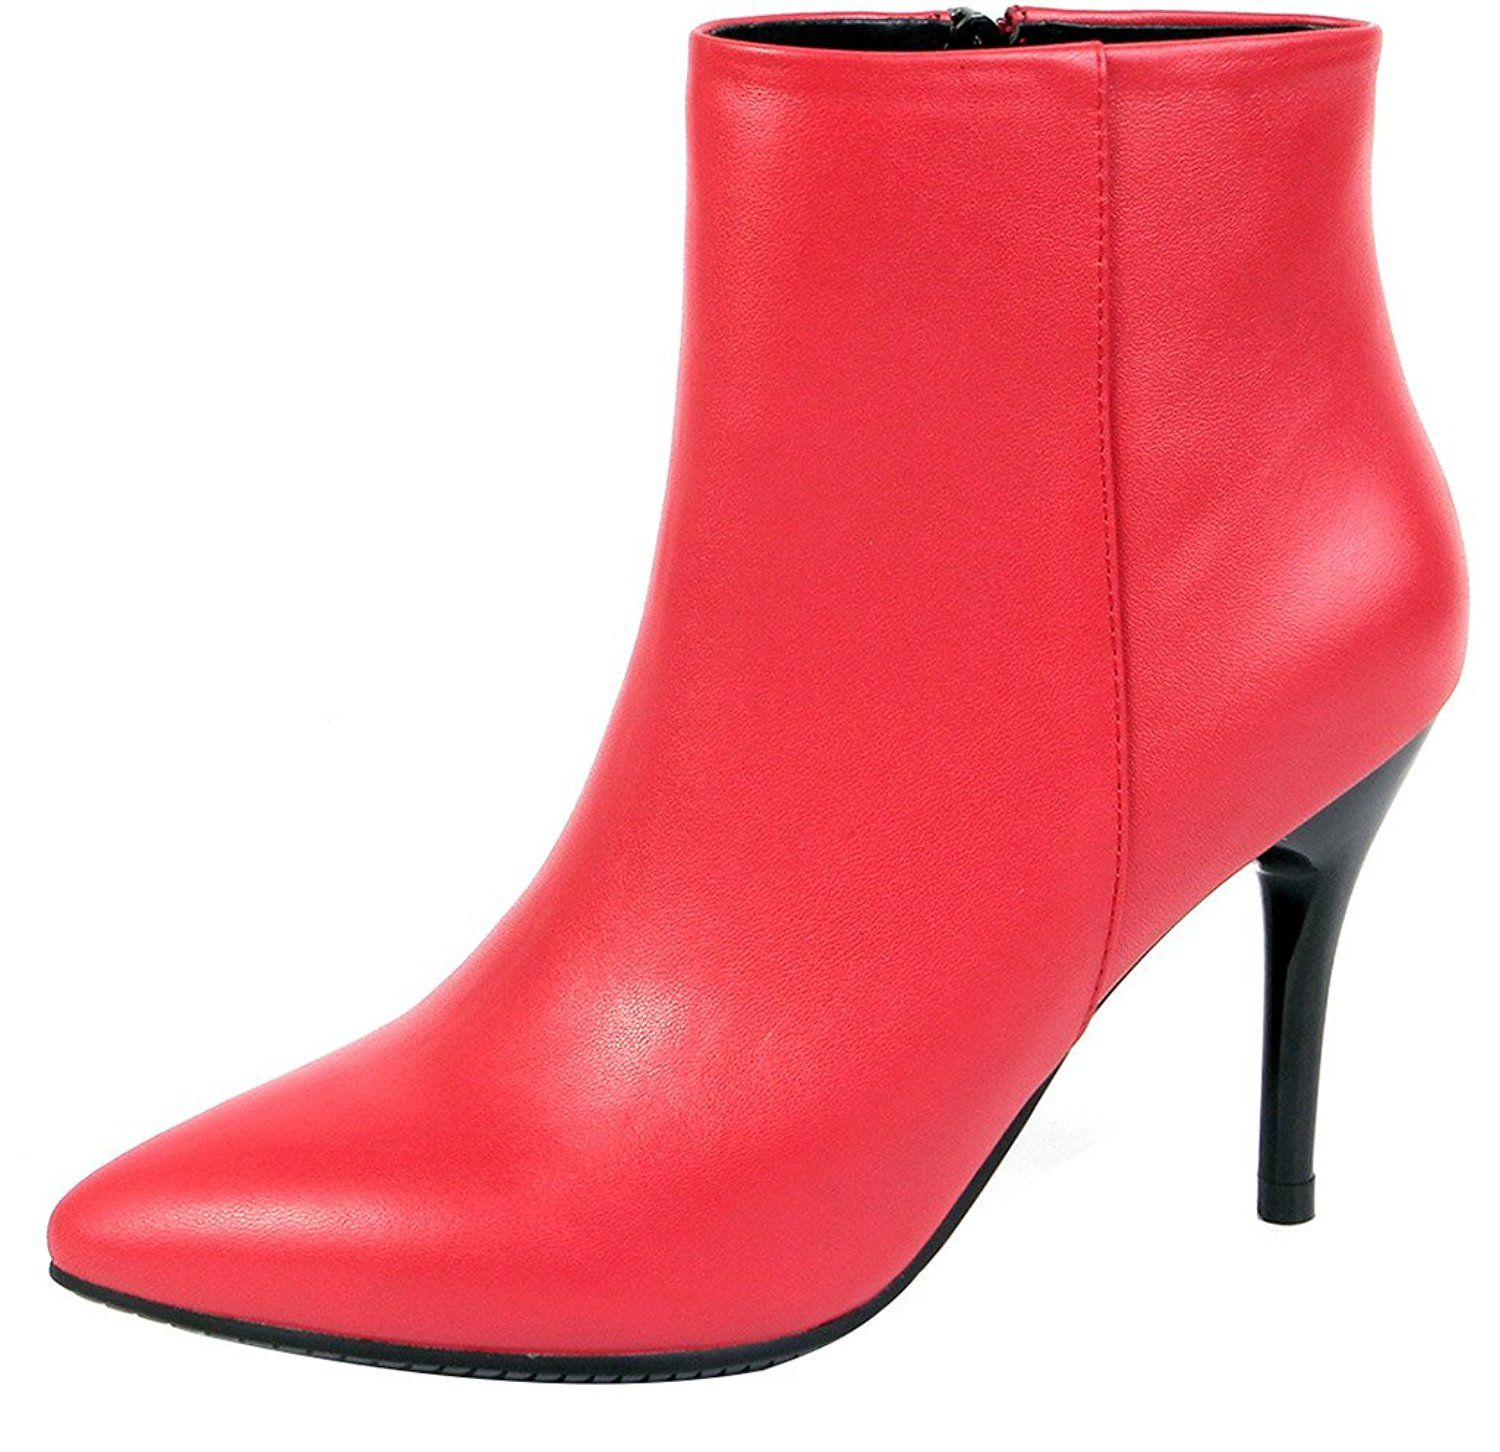 ELEHOT Womens Elemodern 9CM high-heel Boots *** This is an Amazon Affiliate link. Click image to review more details.